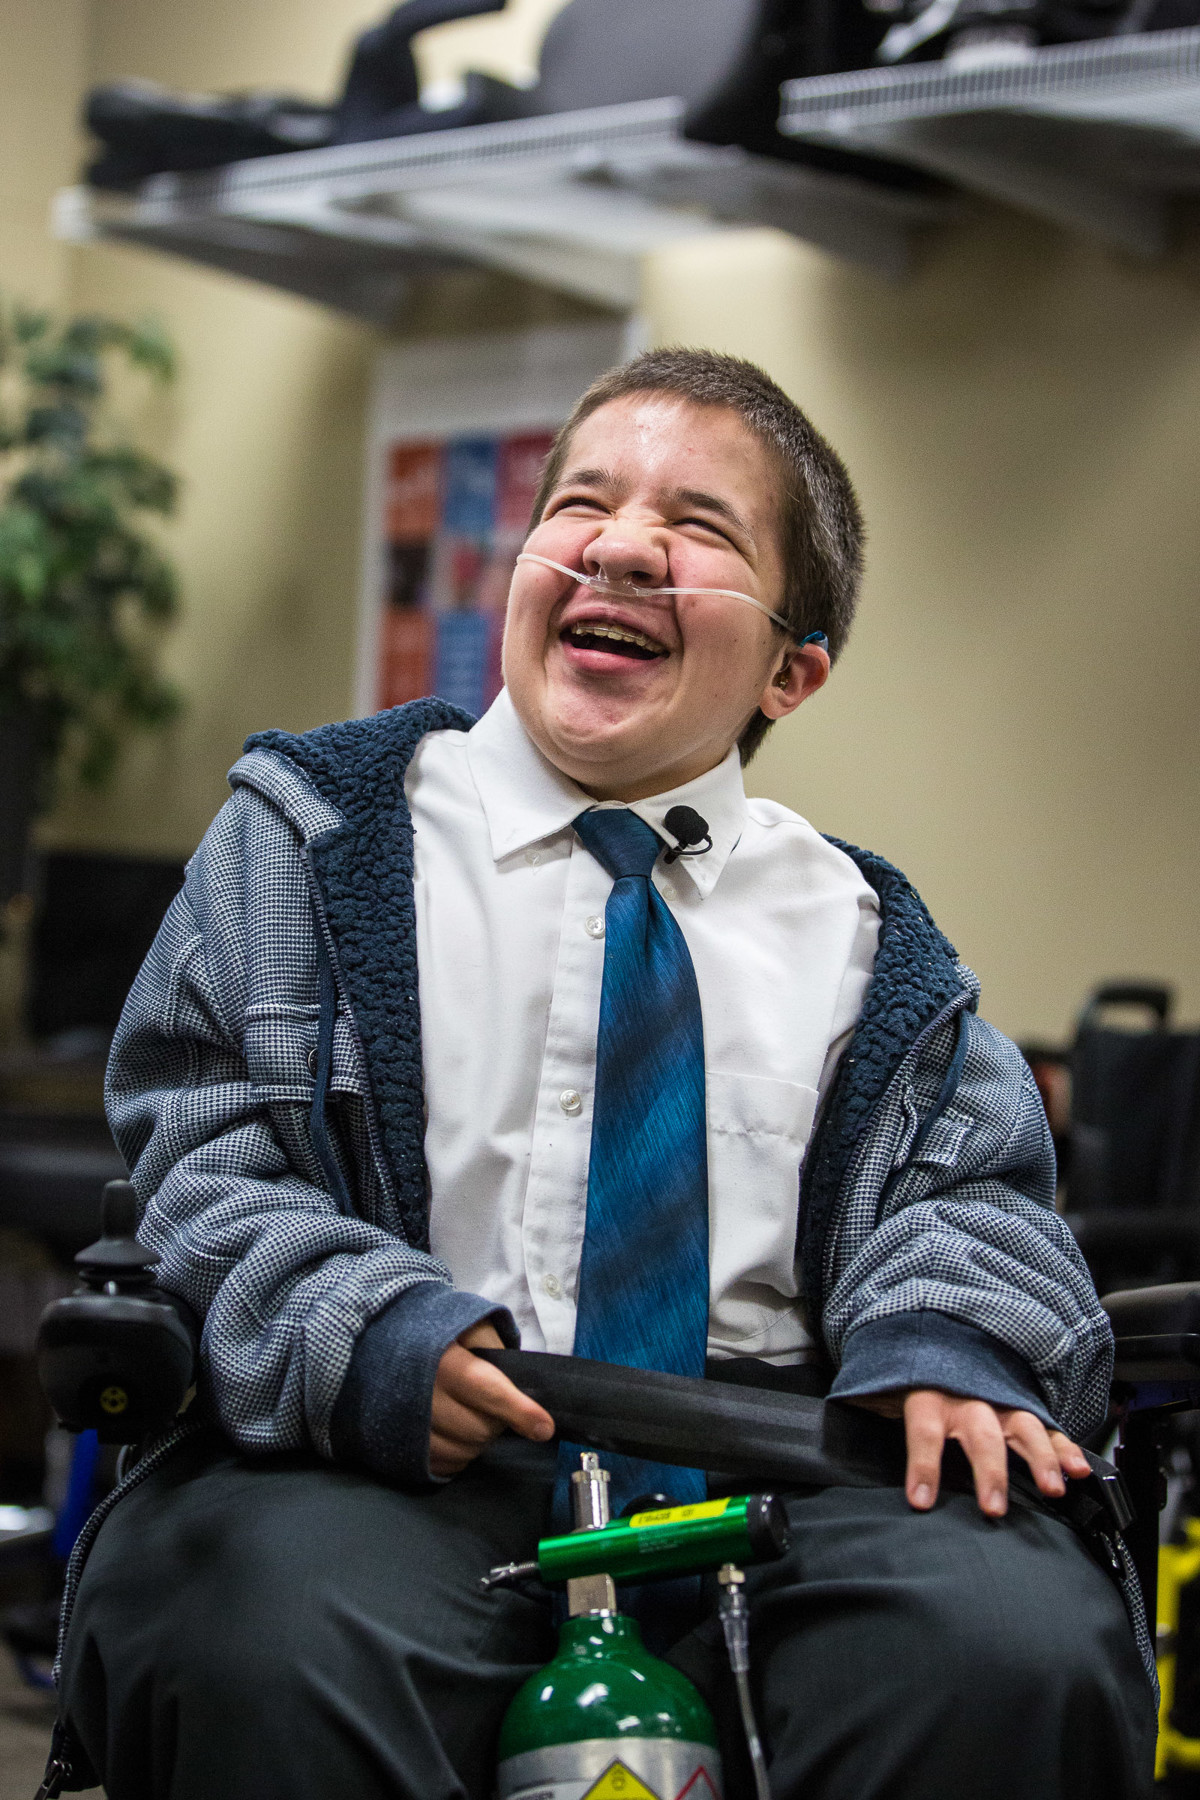 Latter-day Saint missionary with genetic disorder receives new wheelchair